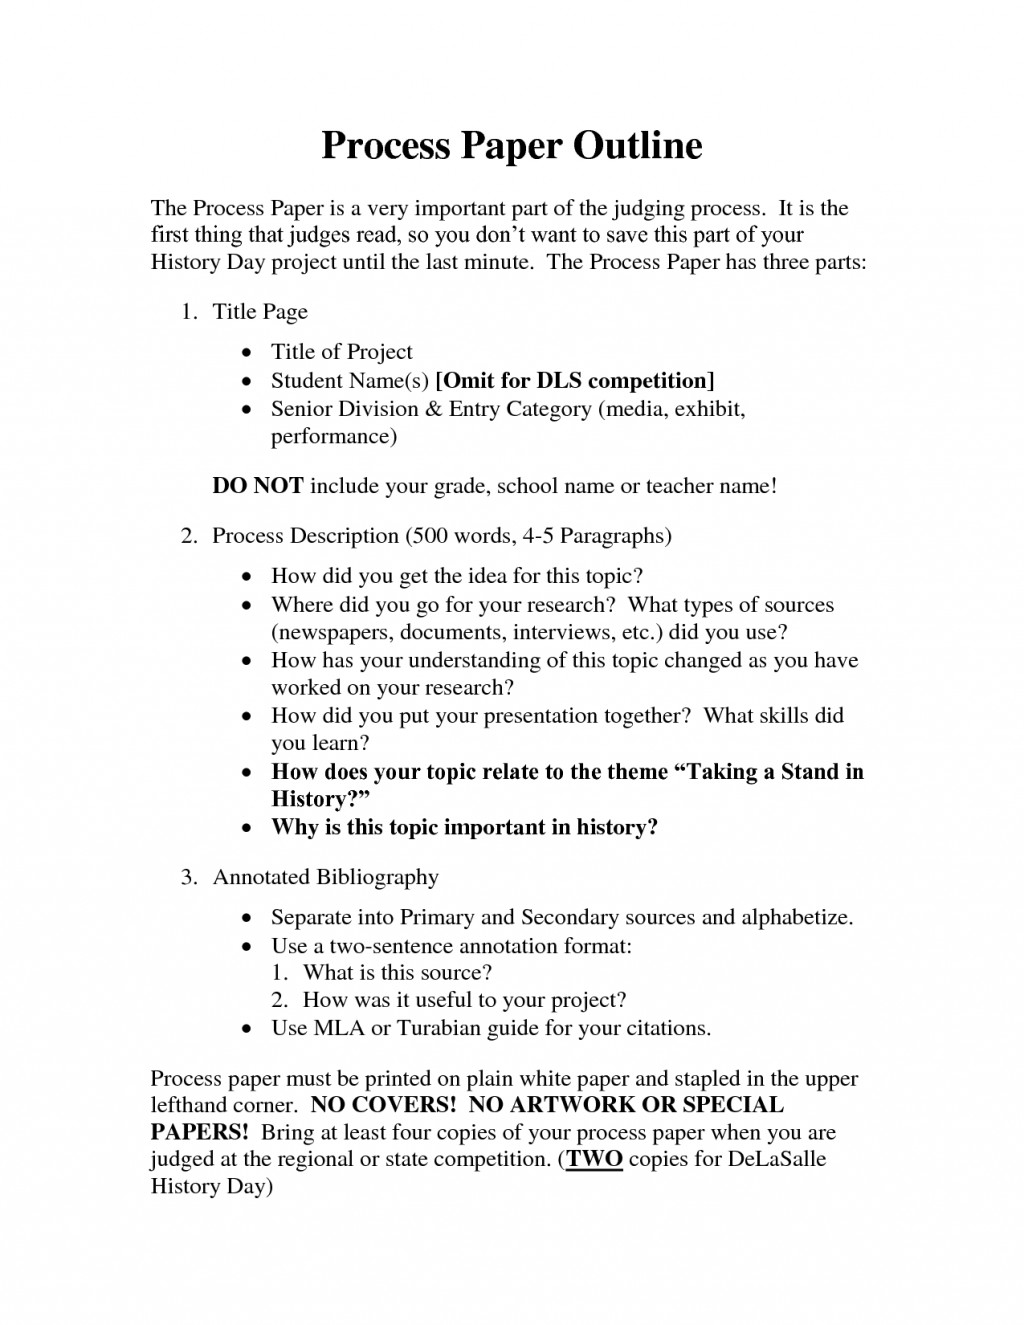 006 Argumentative Research Paper Outline Template Dreaded Example Large